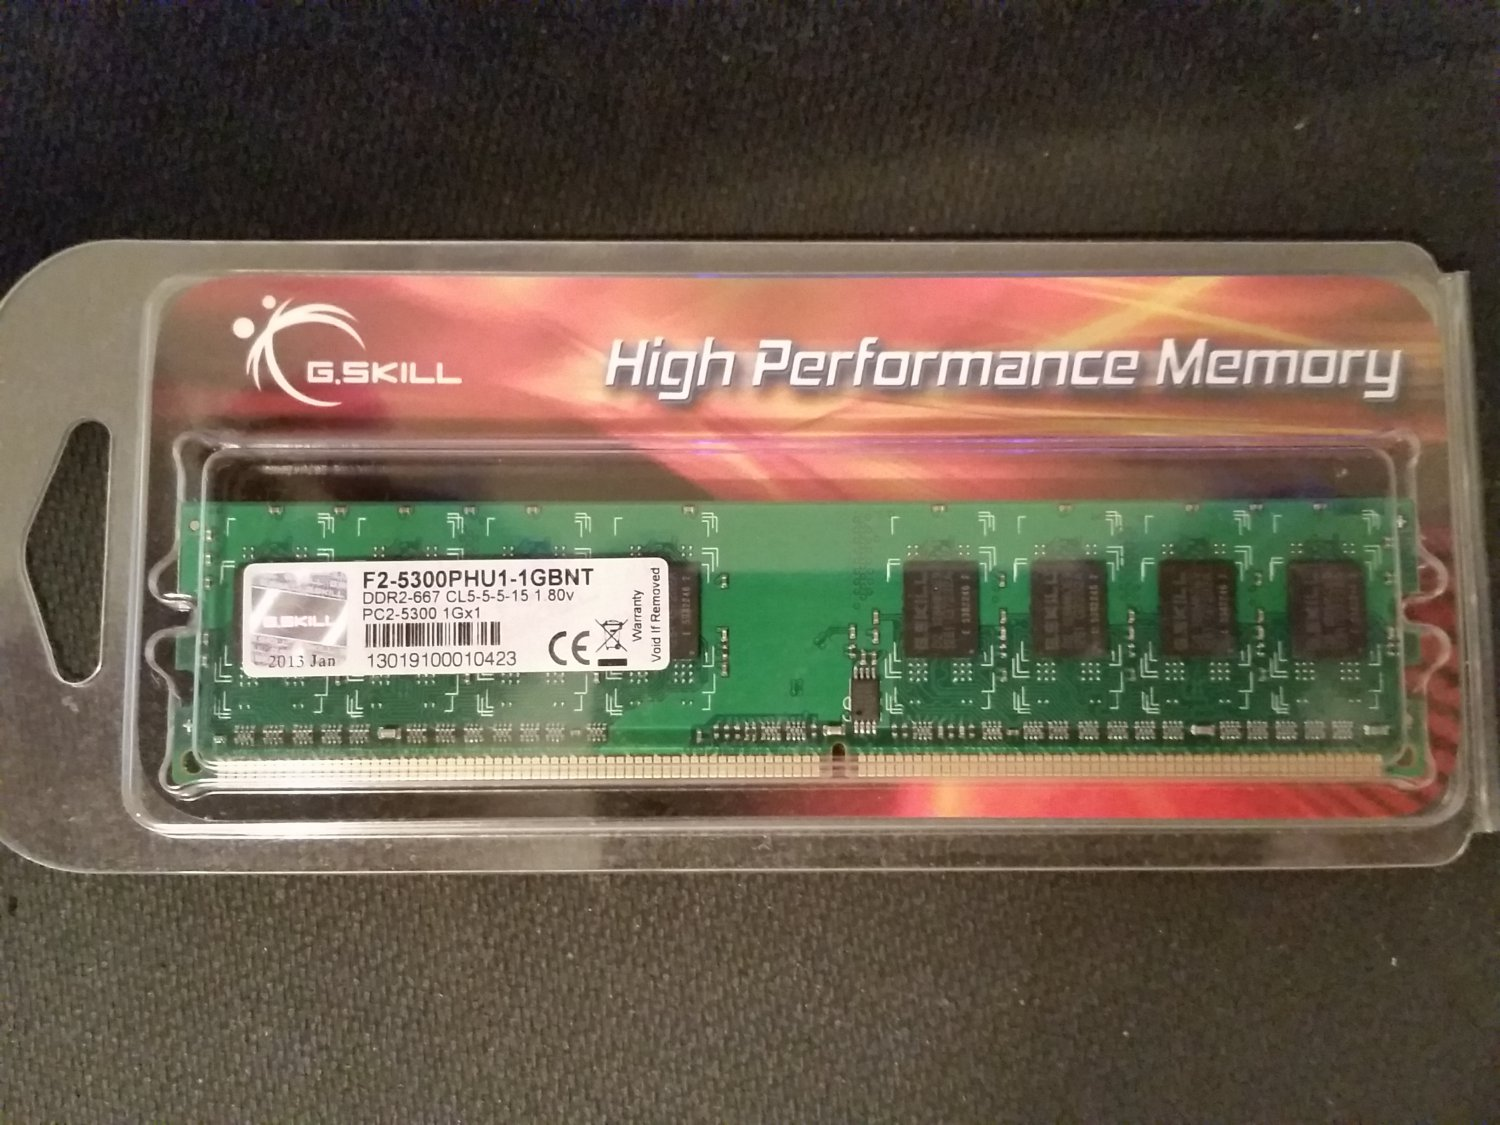 G.Skill 1GB DDR2 PC2-5300 240 Pin Desktop Memory F2-5300PHU1-1GBNT - New!